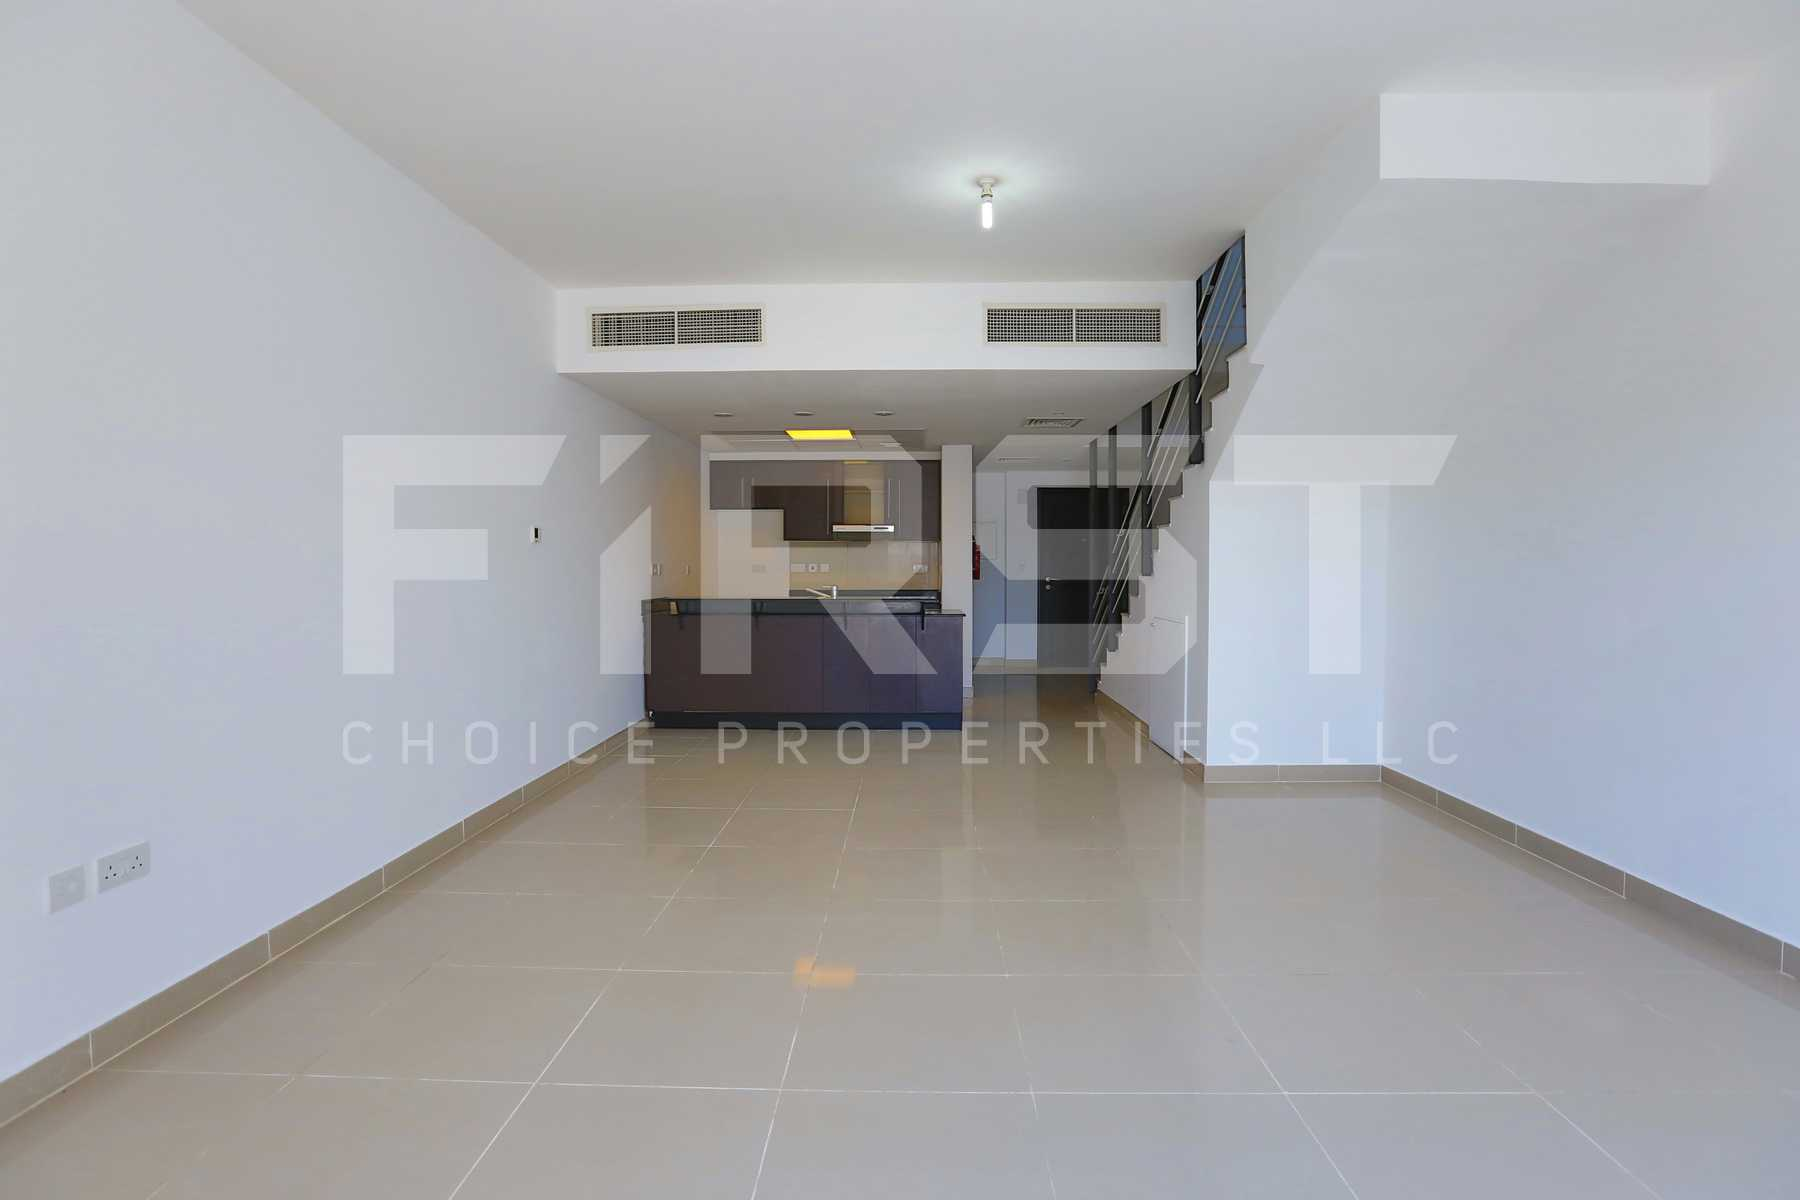 4. Internal Photo of 3 Bedroom Villa in Al Reef Villas Al Reef Abu Dhabi UAE 225.2 sq.m 2424 sq.ft (2).jpg